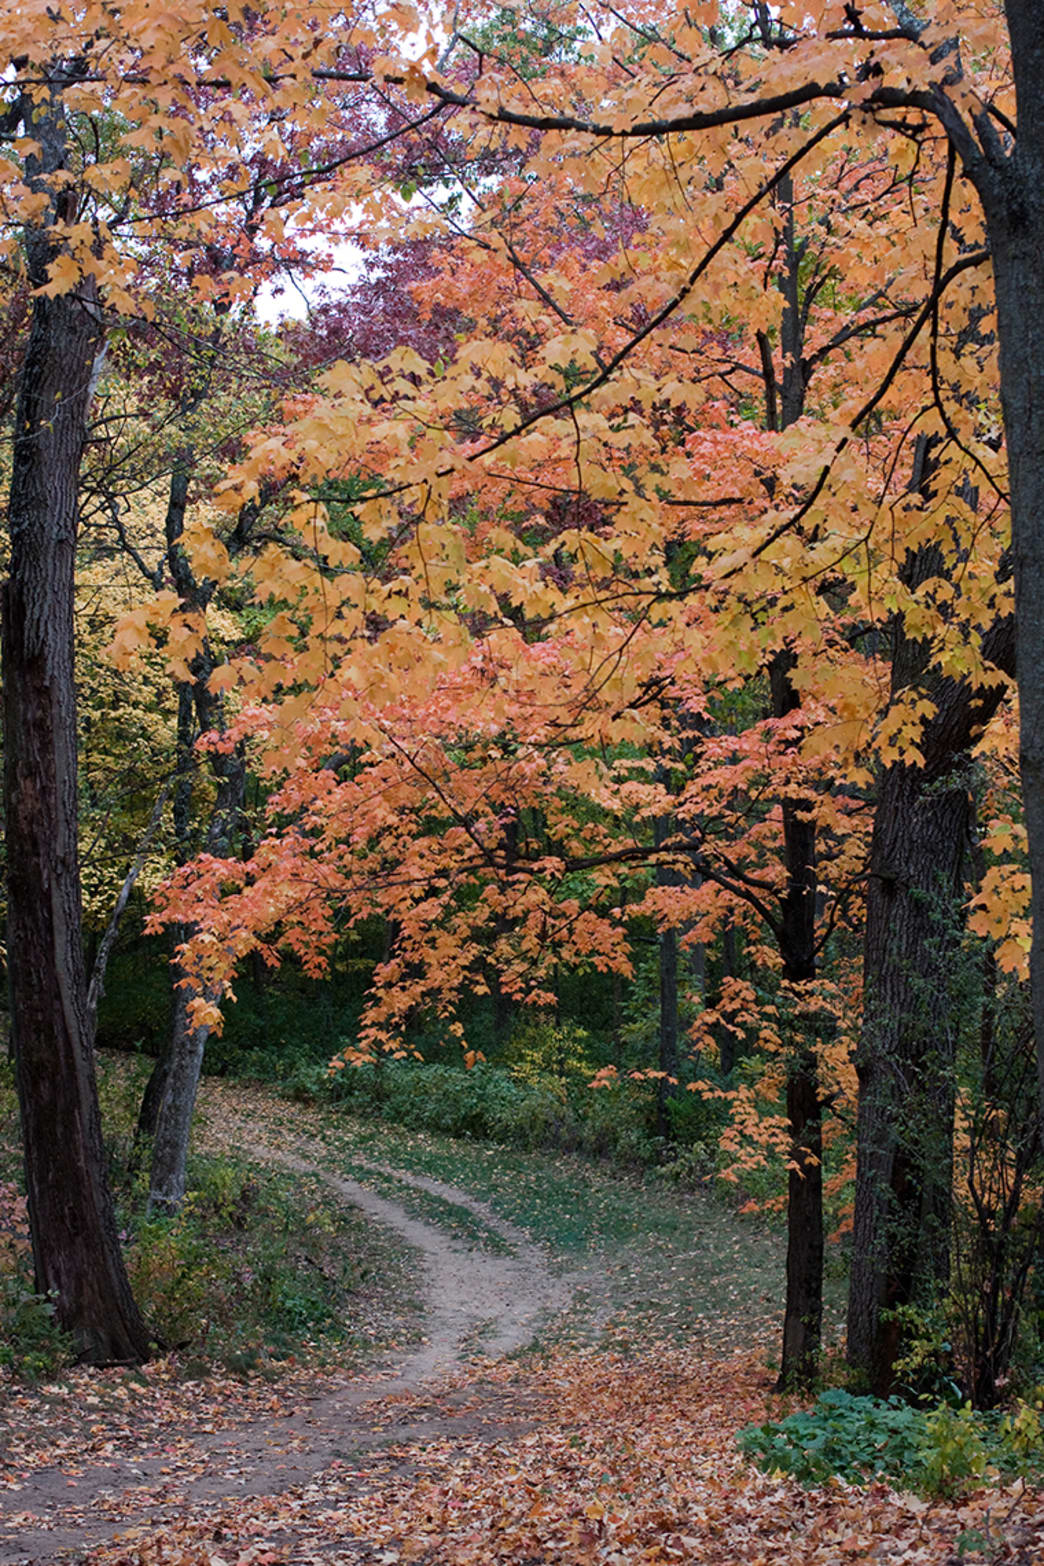 It's tough to beat Kettle Moraine in the fall.